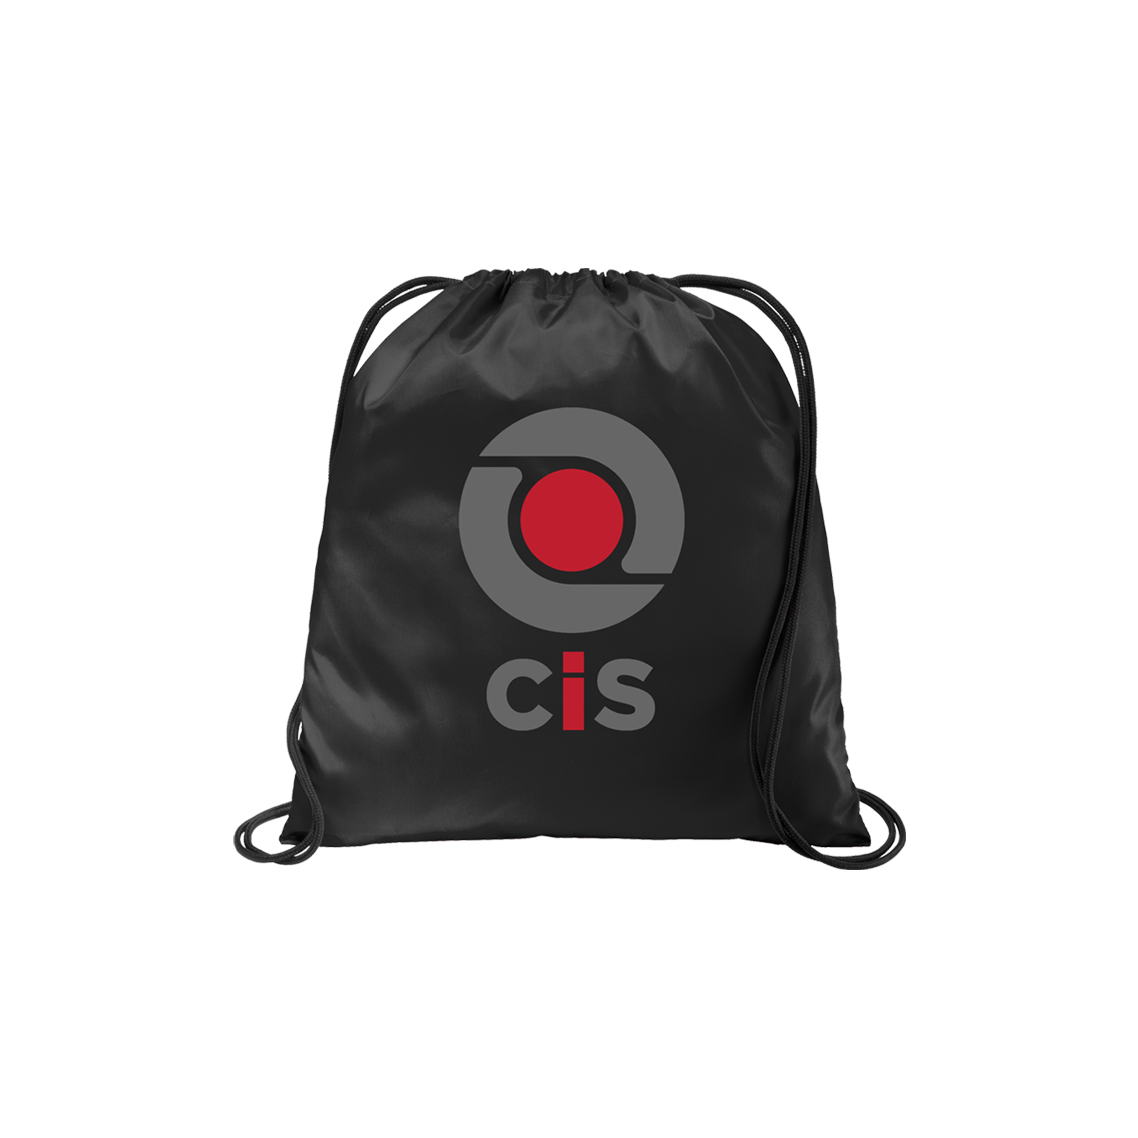 CIS Drawstring Backpack